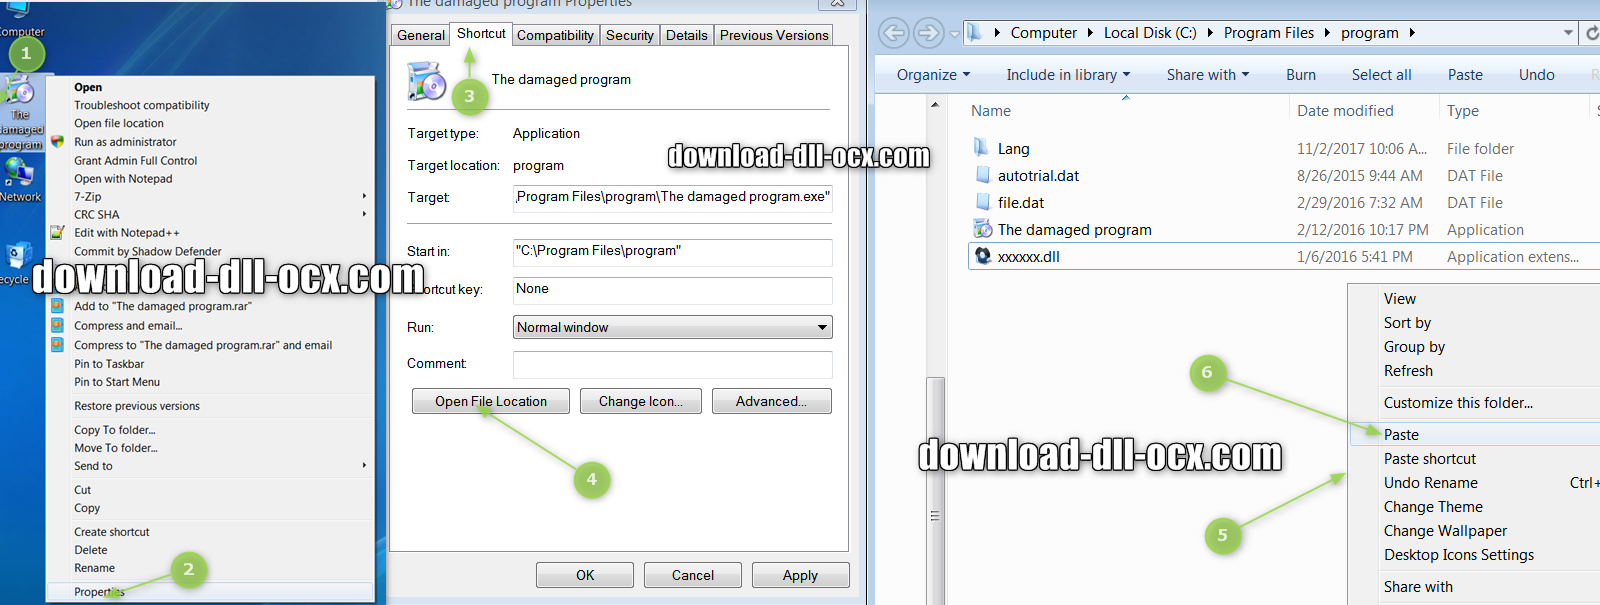 how to install BWCHelpr-8876480.dll file? for fix missing